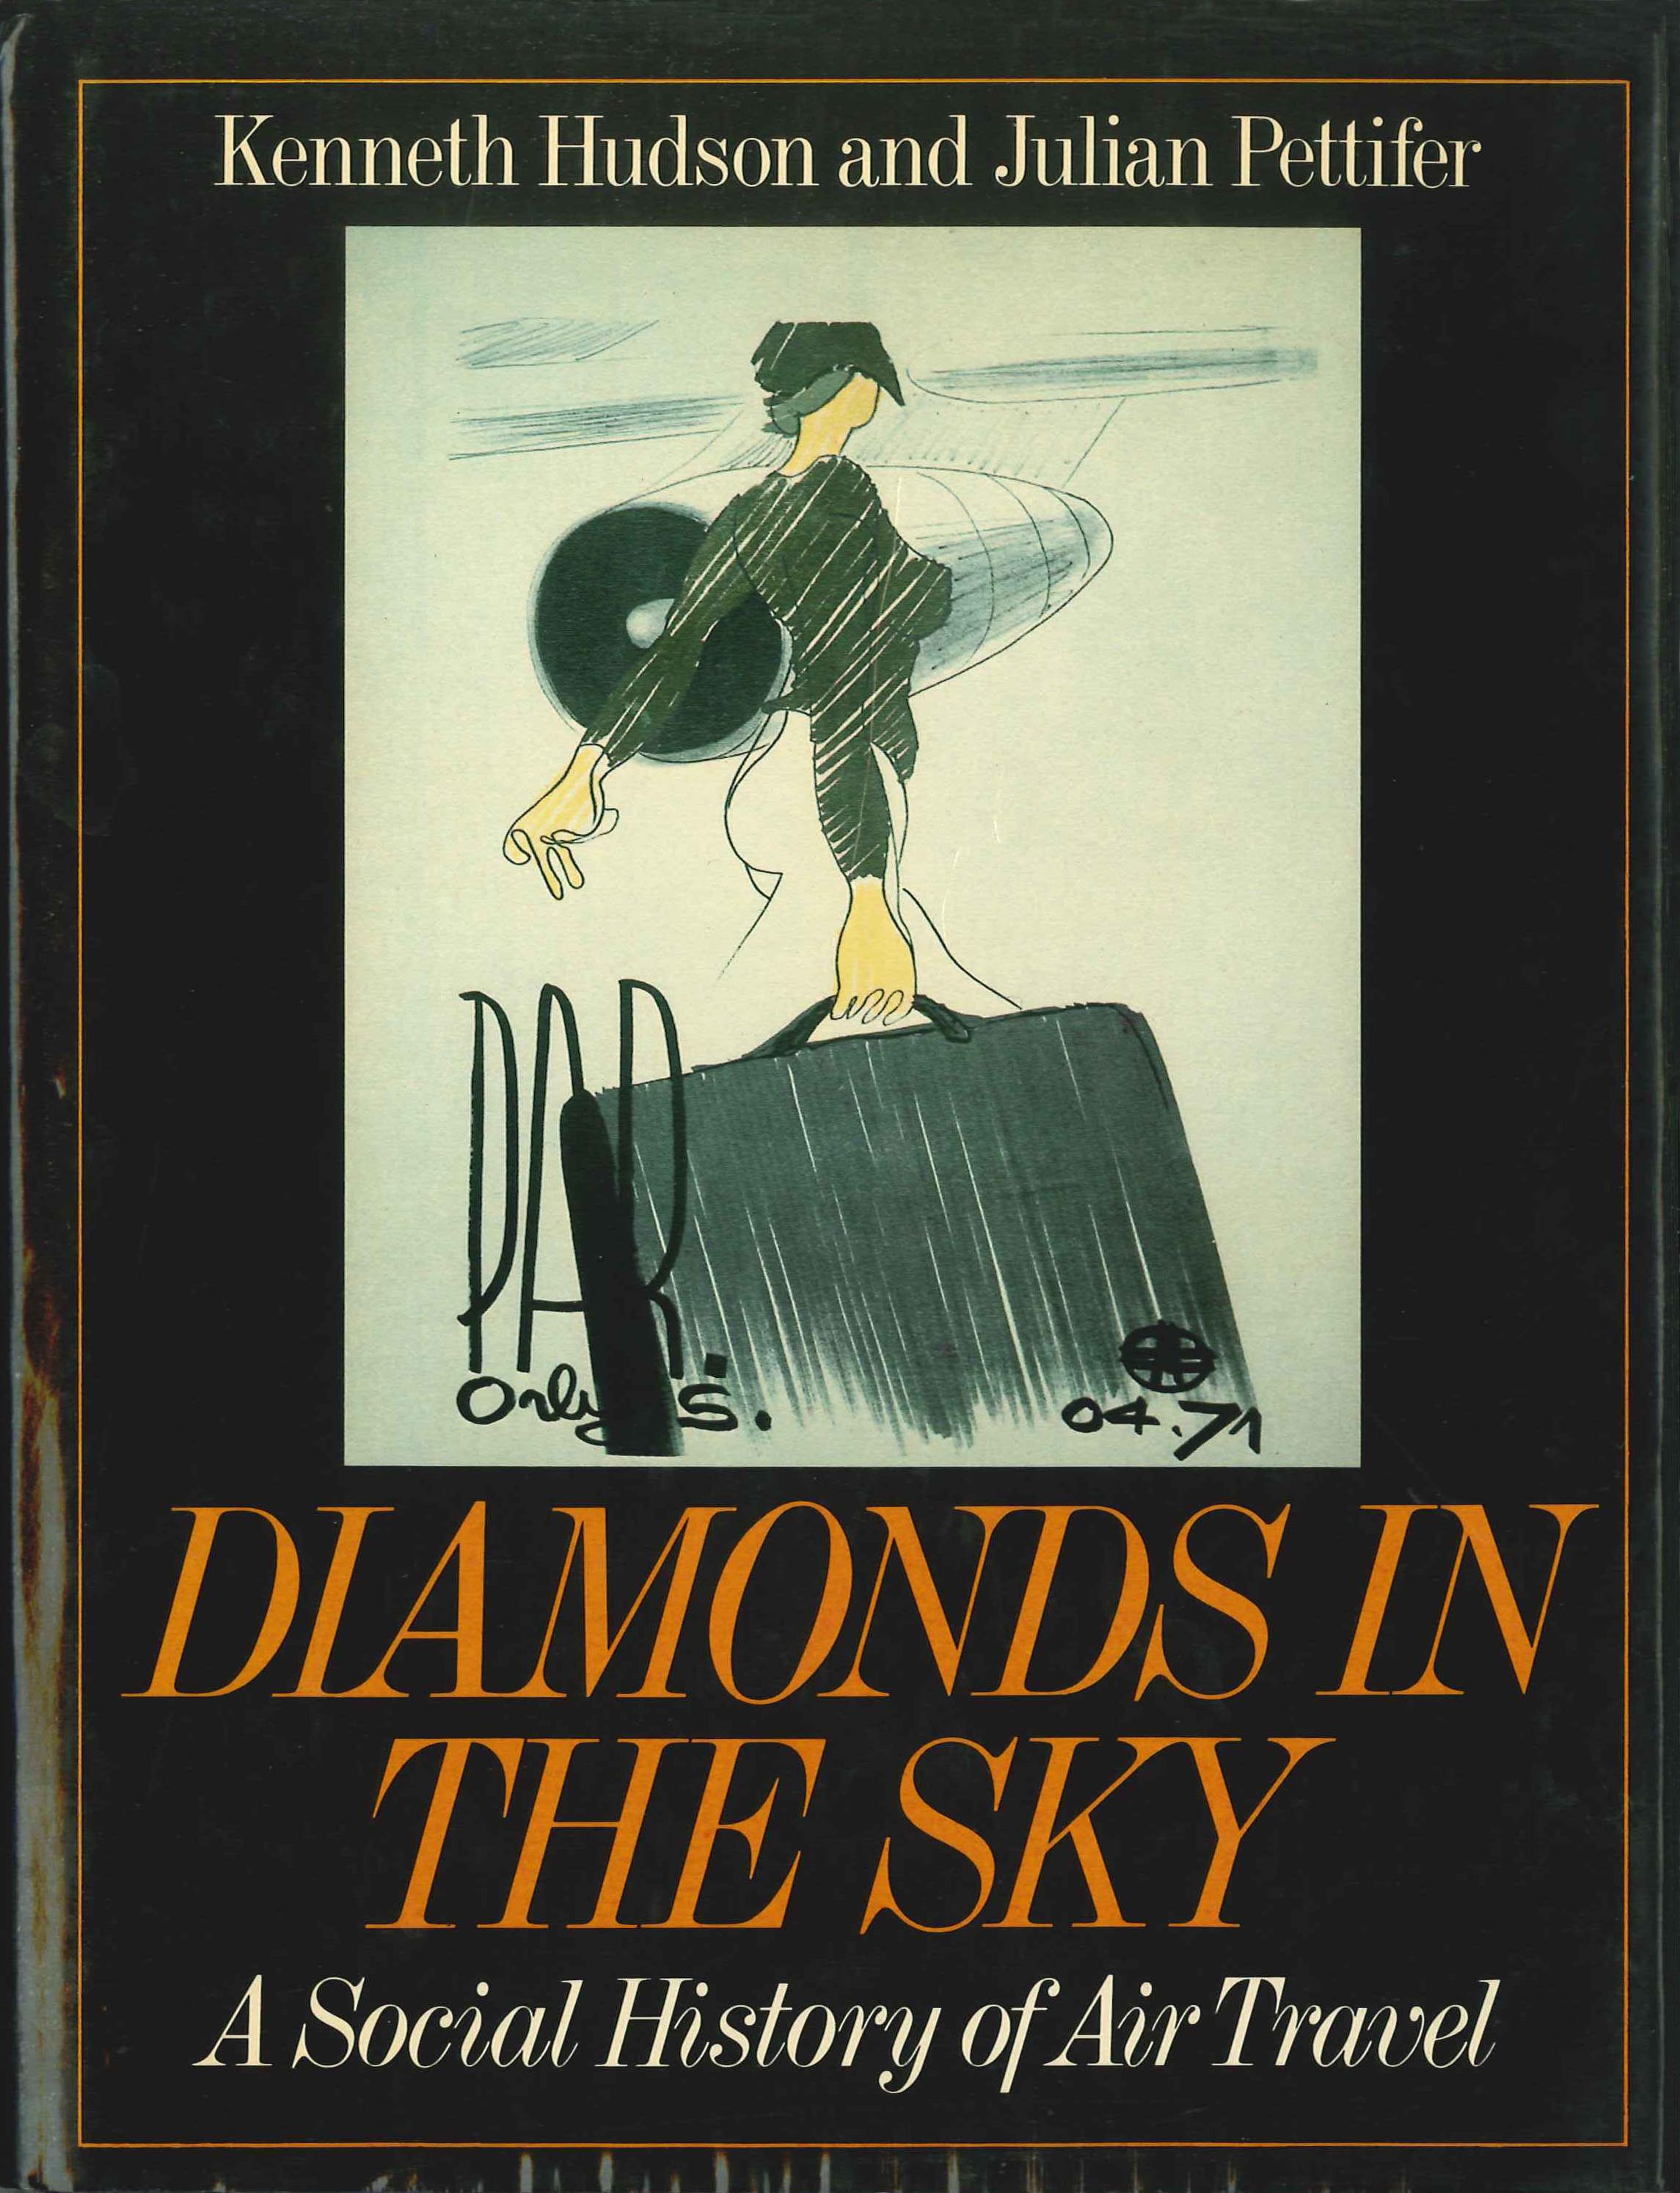 Diamonds in the Sky - A Social History of Air Travel